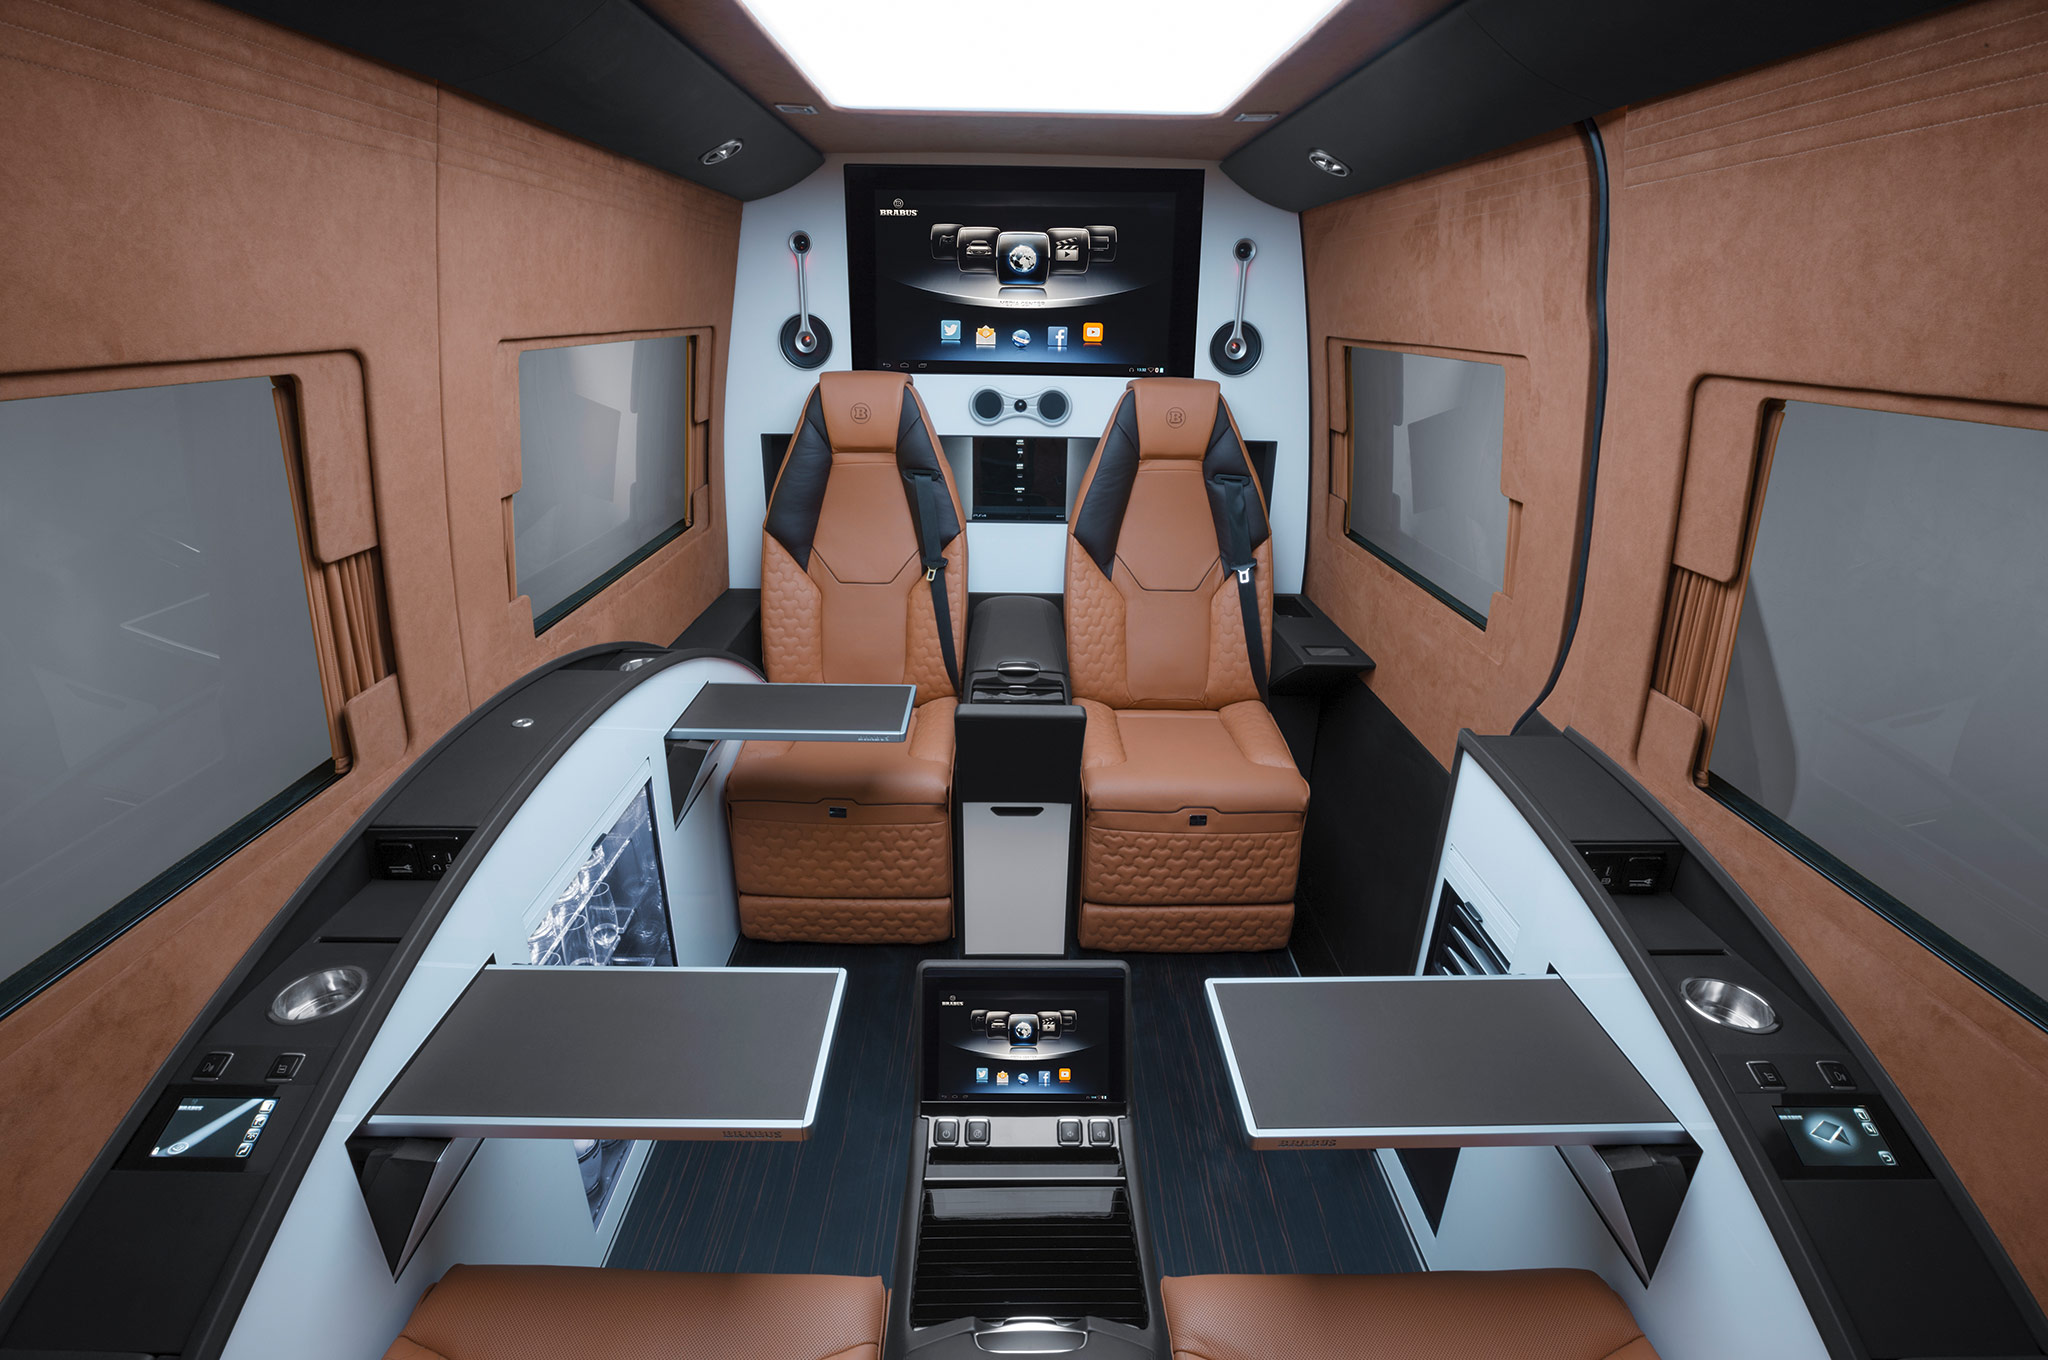 ' ' from the web at 'http://st.automobilemag.com/uploads/sites/11/2014/08/Brabus-Mercedes-Benz-Sprinter-Business-Lounge-seats-with-tables.jpg'